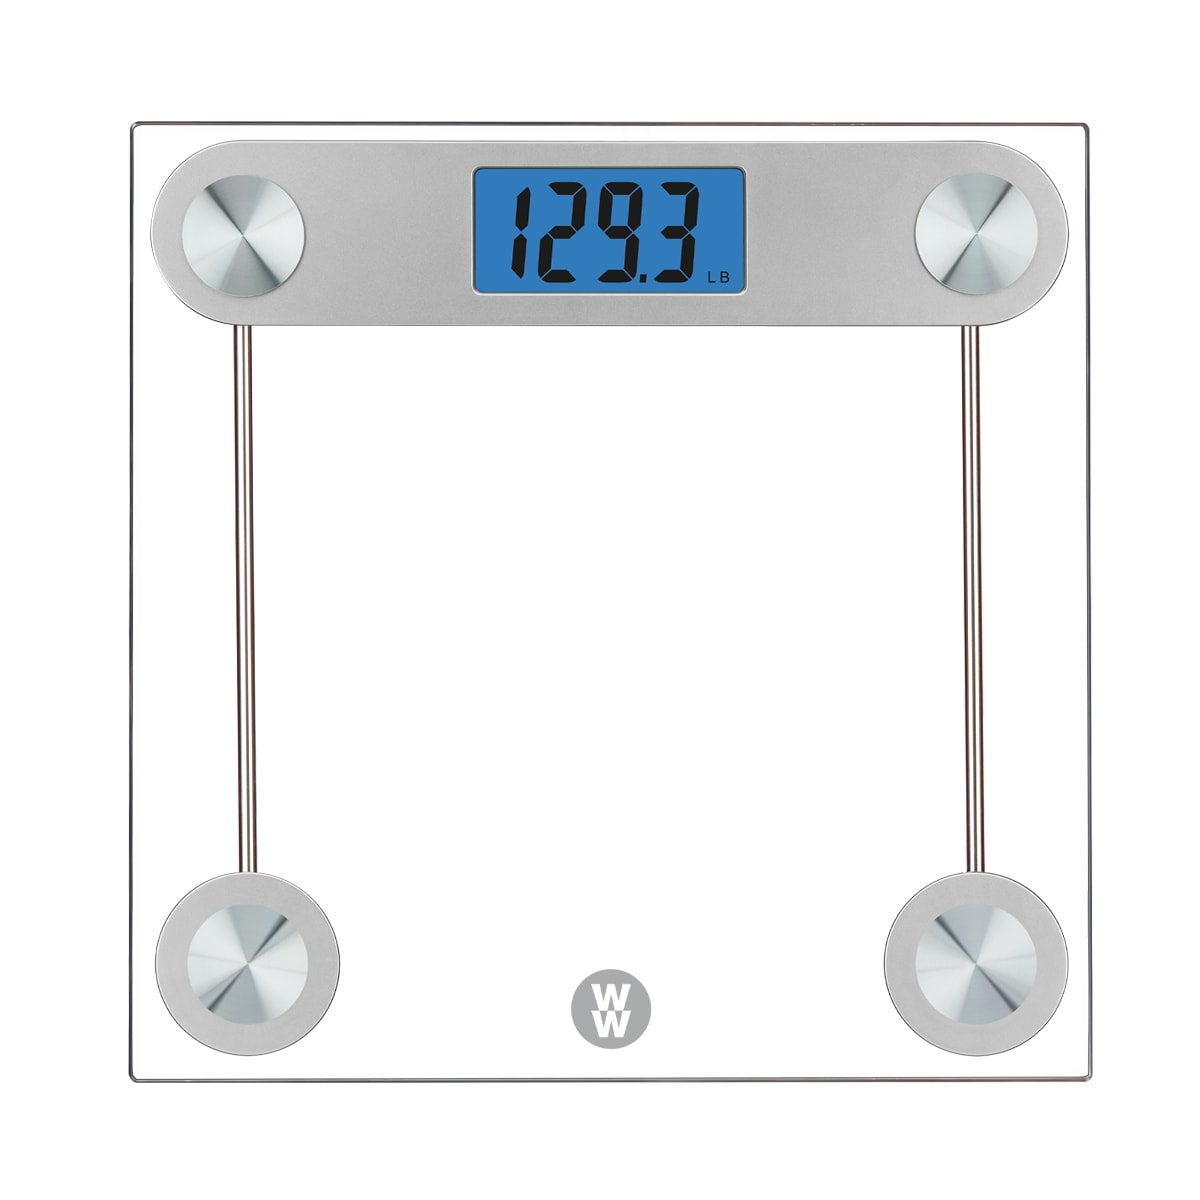 scales by conair digital glass scale